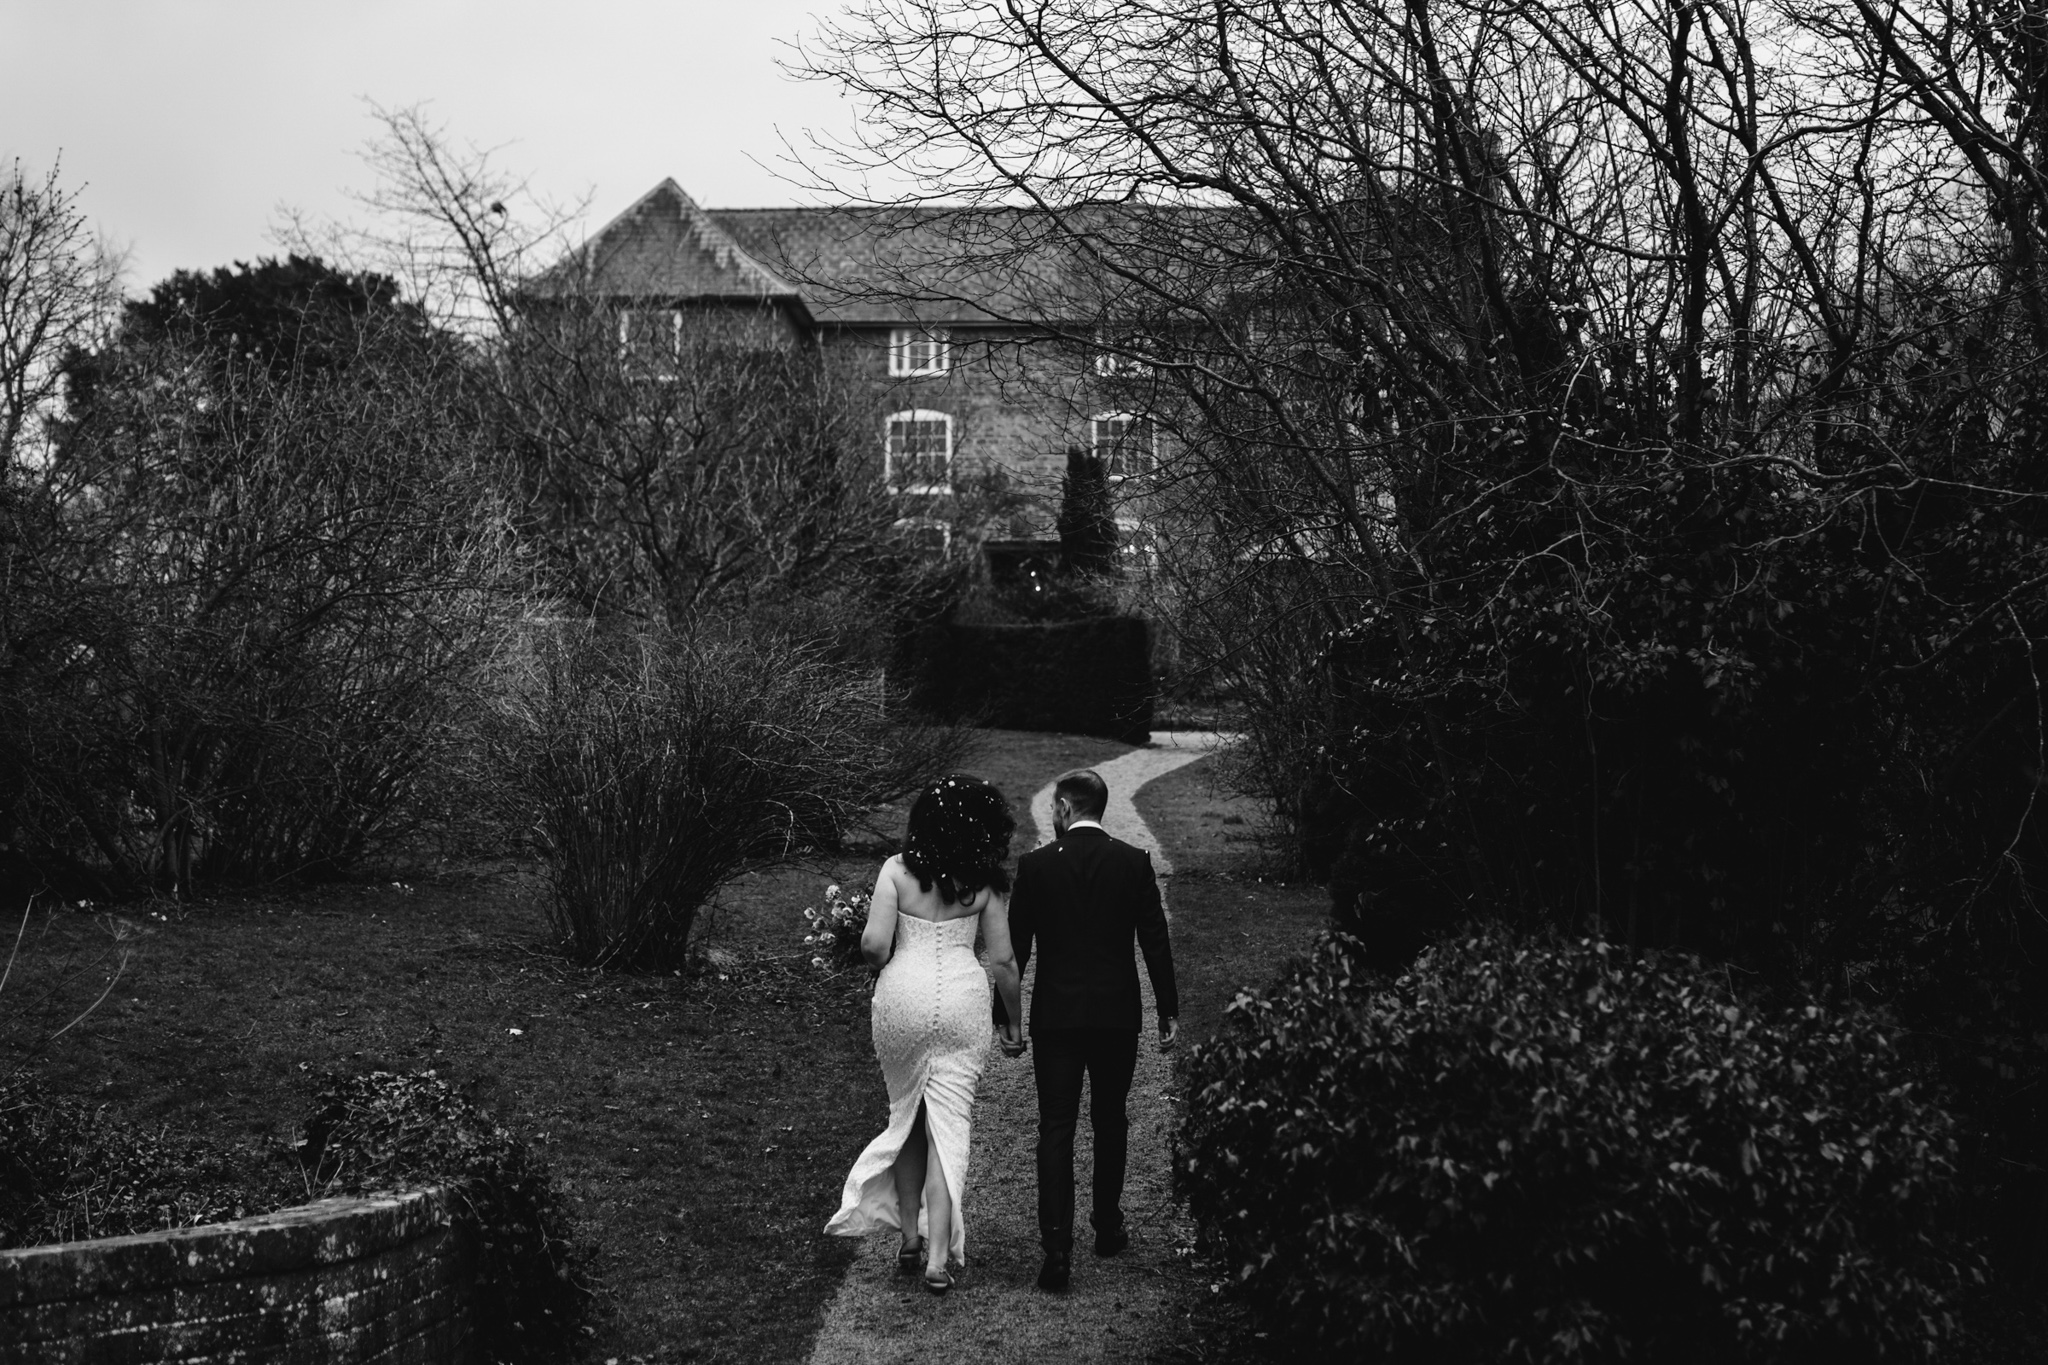 derbyshire-wedding-photographer-march-april-80.jpg